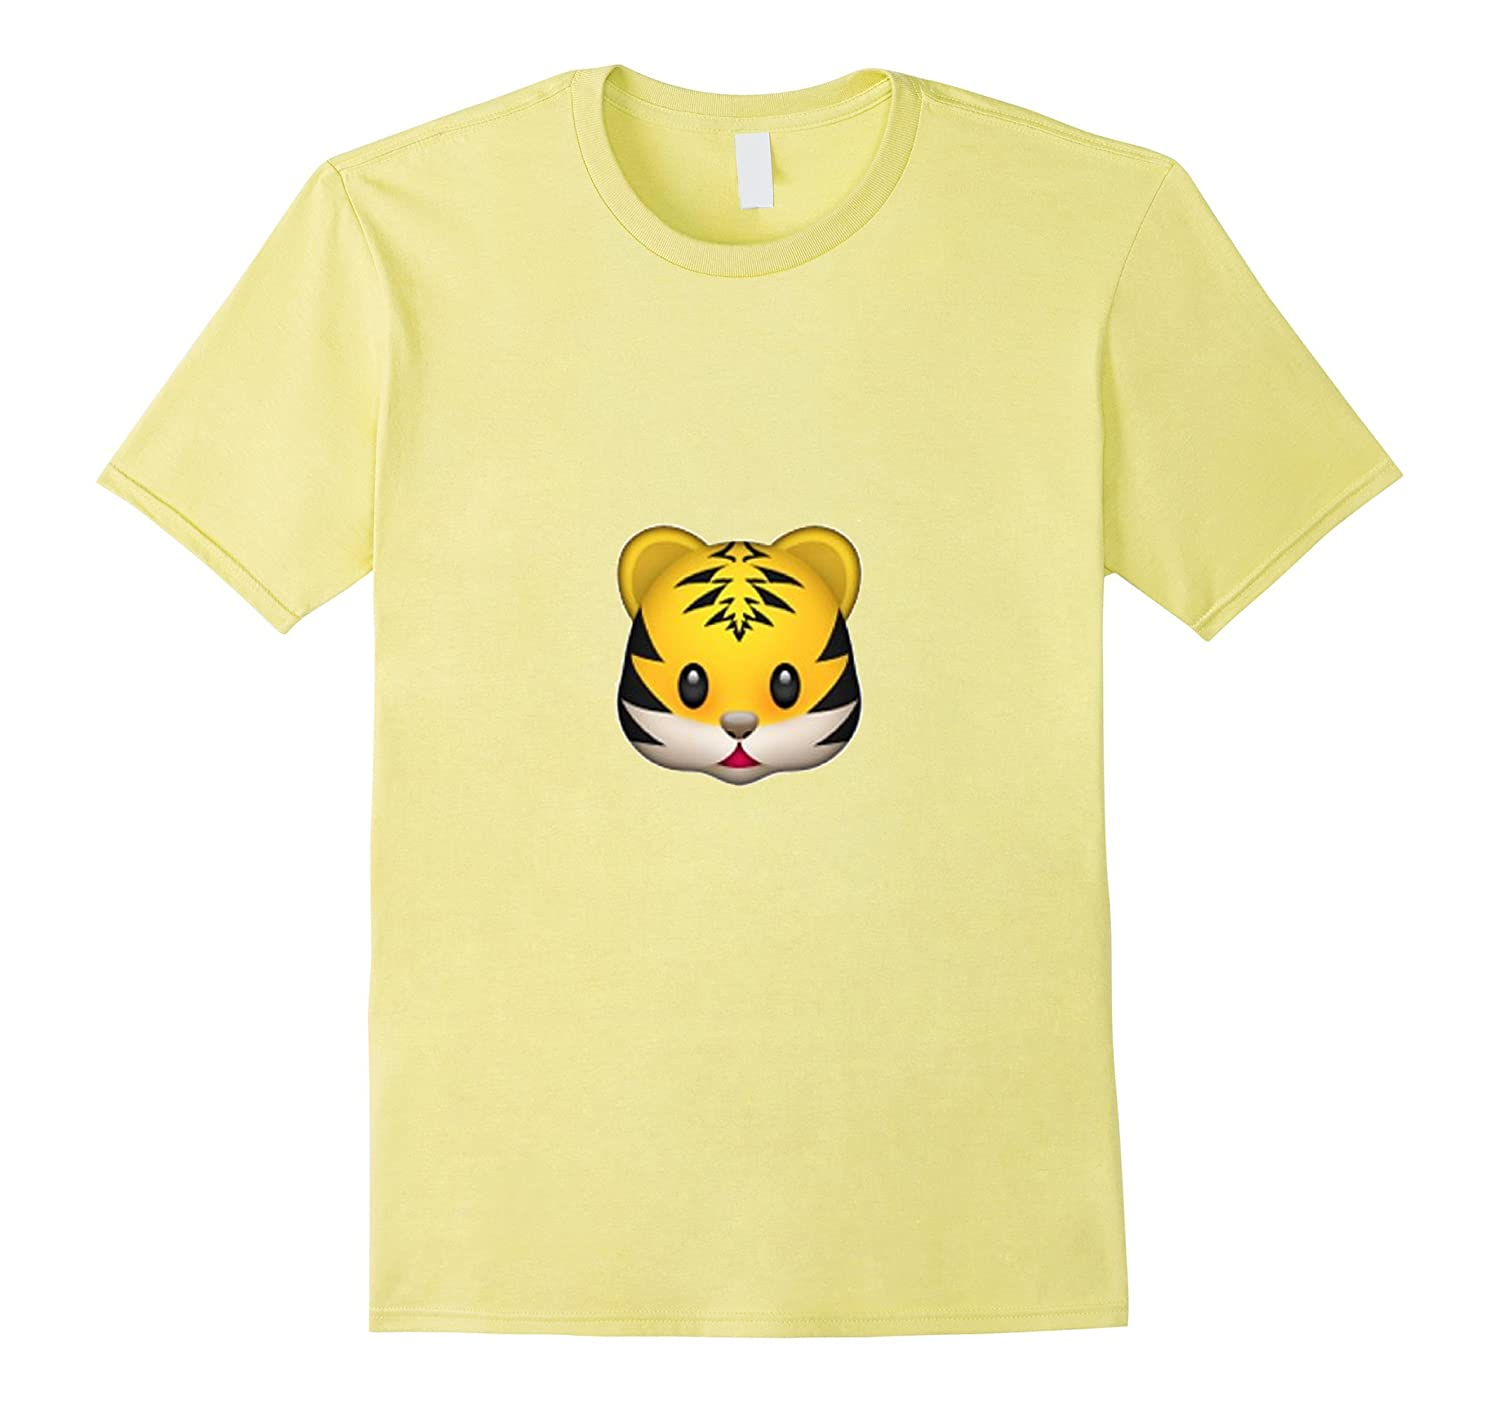 Tiger Emoji T-Shirt Lion Zoo Fast Cute Adorable Pet Animal